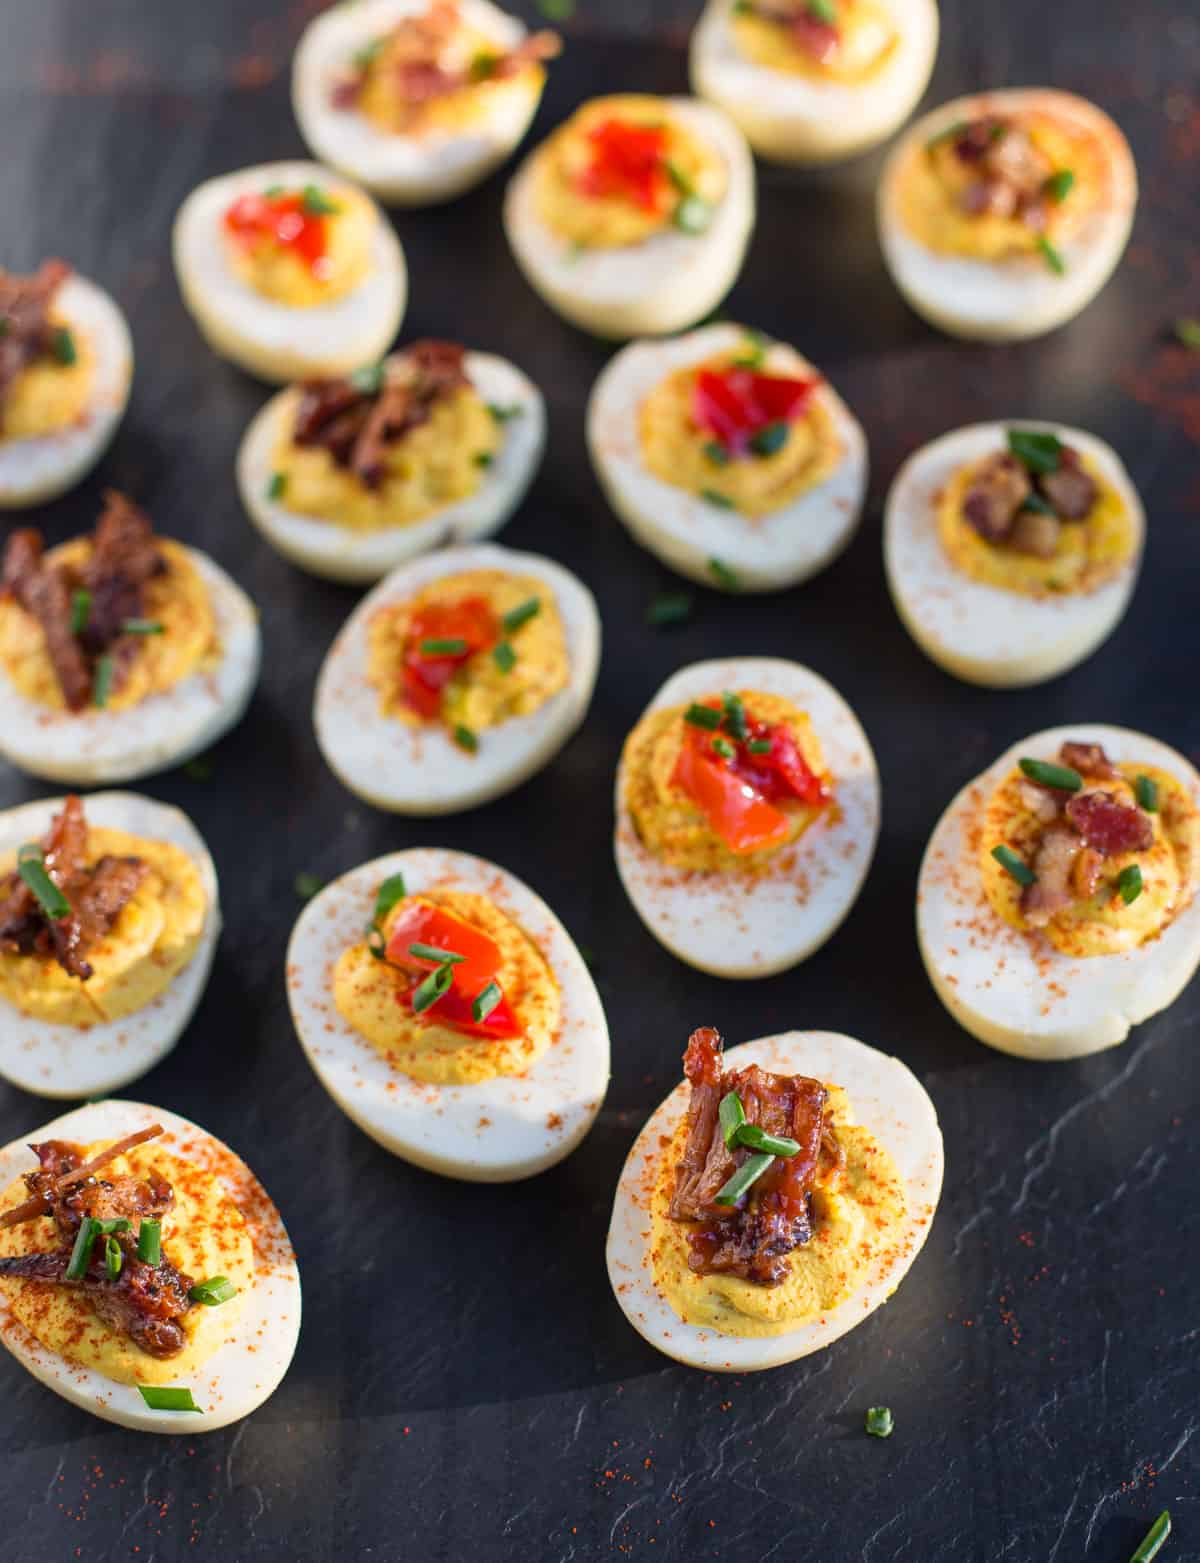 Deviled Eggs topped with brisket and Mama Lil's peppers on a slate platter